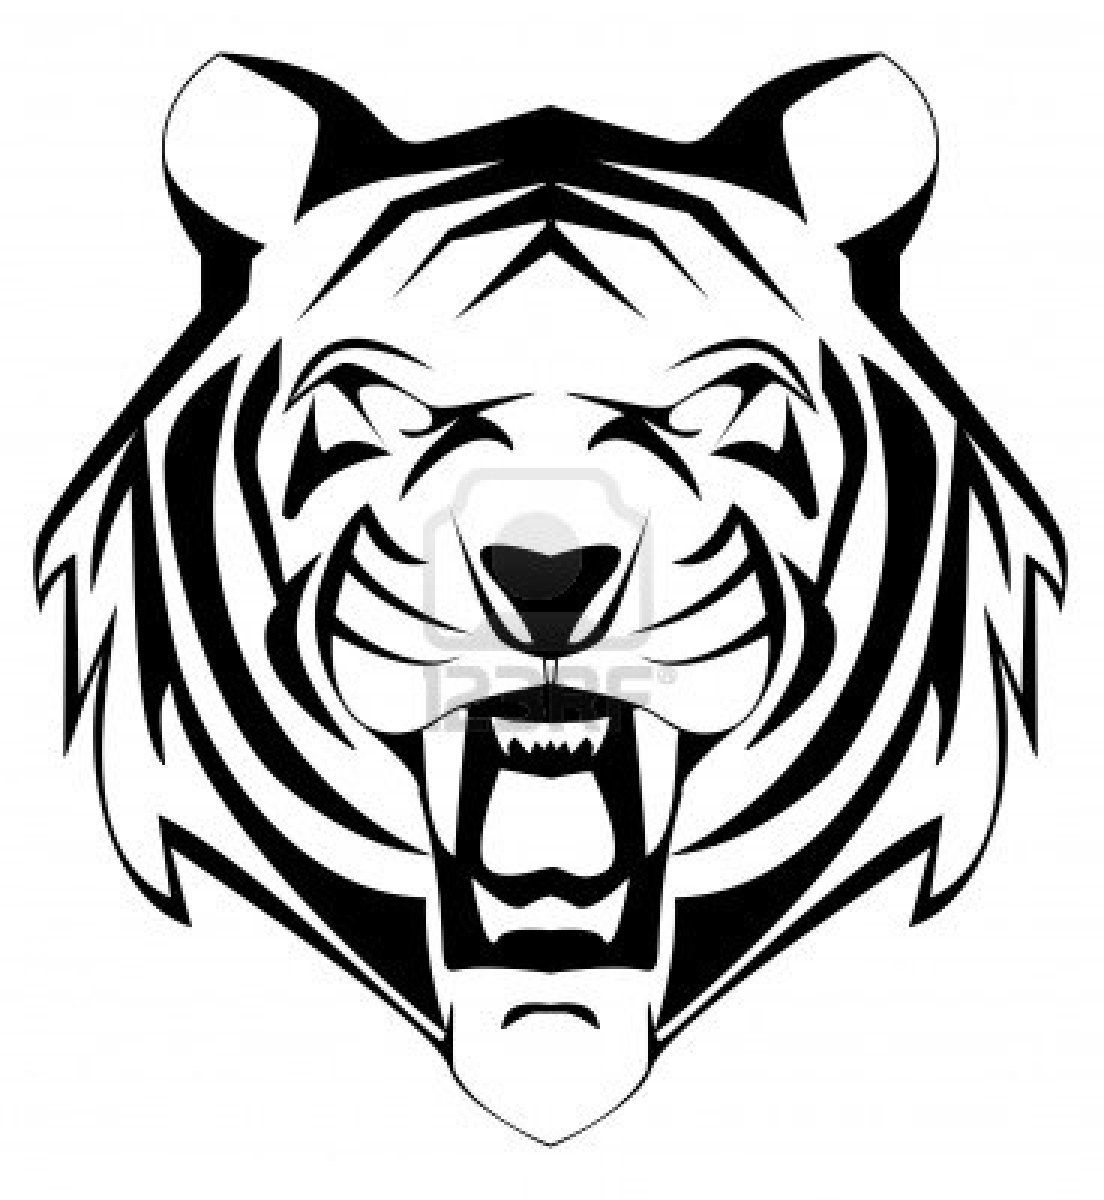 Tiger Mascot Pinterest Symbols Tigers And Google